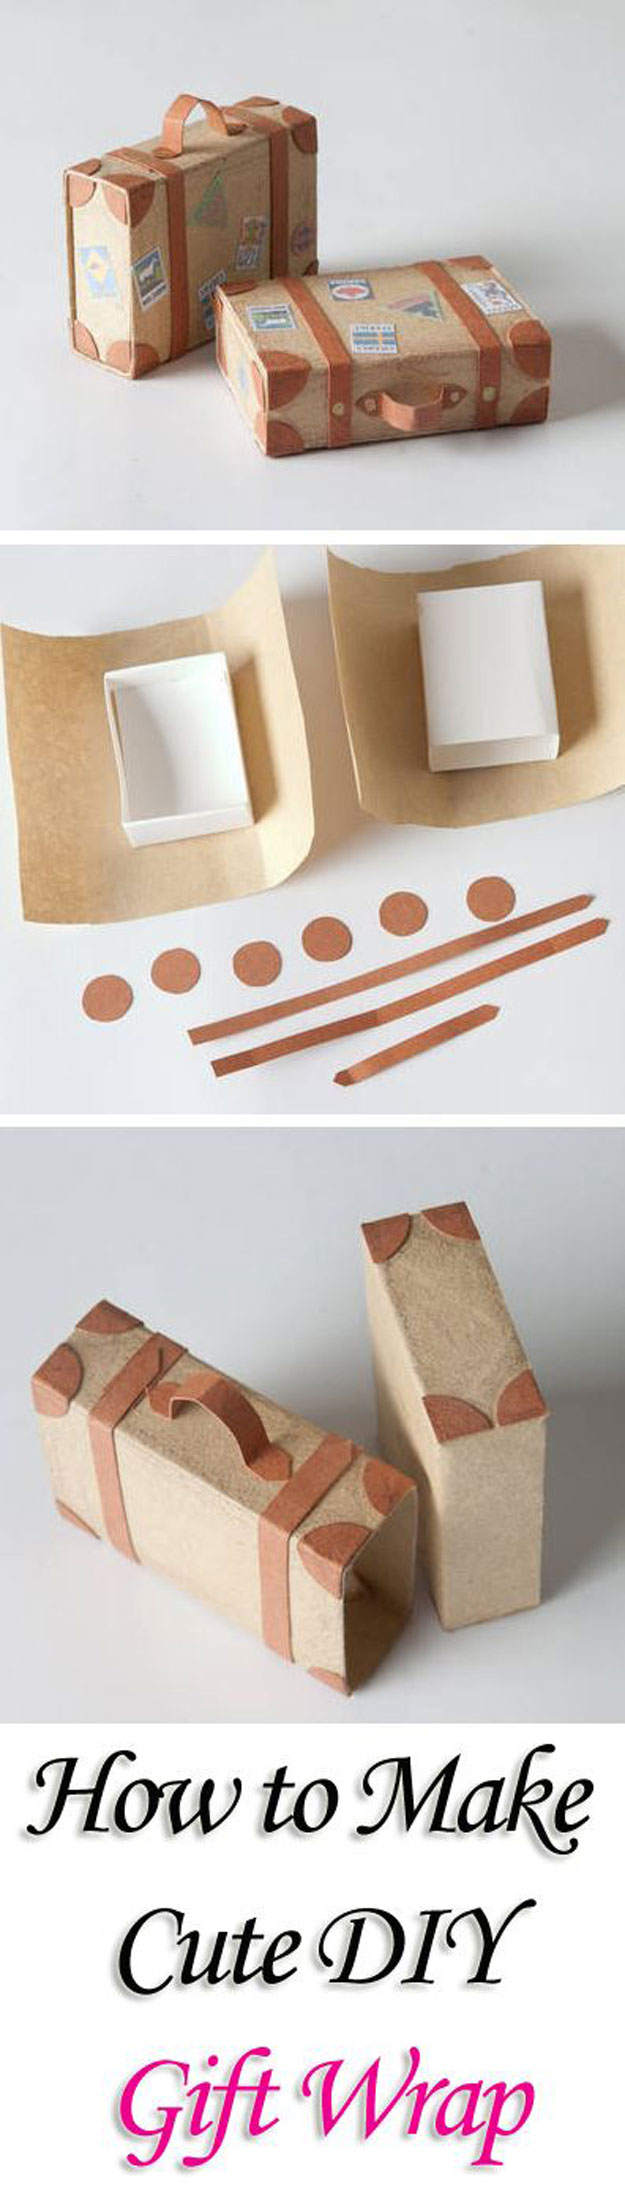 DIY Gift Wrapping Ideas - How To Wrap A Present - Tutorials, Cool Ideas and Instructions | Cute Gift Wrap Ideas for Christmas, Birthdays and Holidays | Tips for Bows and Creative Wrapping Papers | Matchbox-Suitcase-Gift-Wrap| http://diyjoy.com/how-to-wrap-a-gift-wrapping-ideas